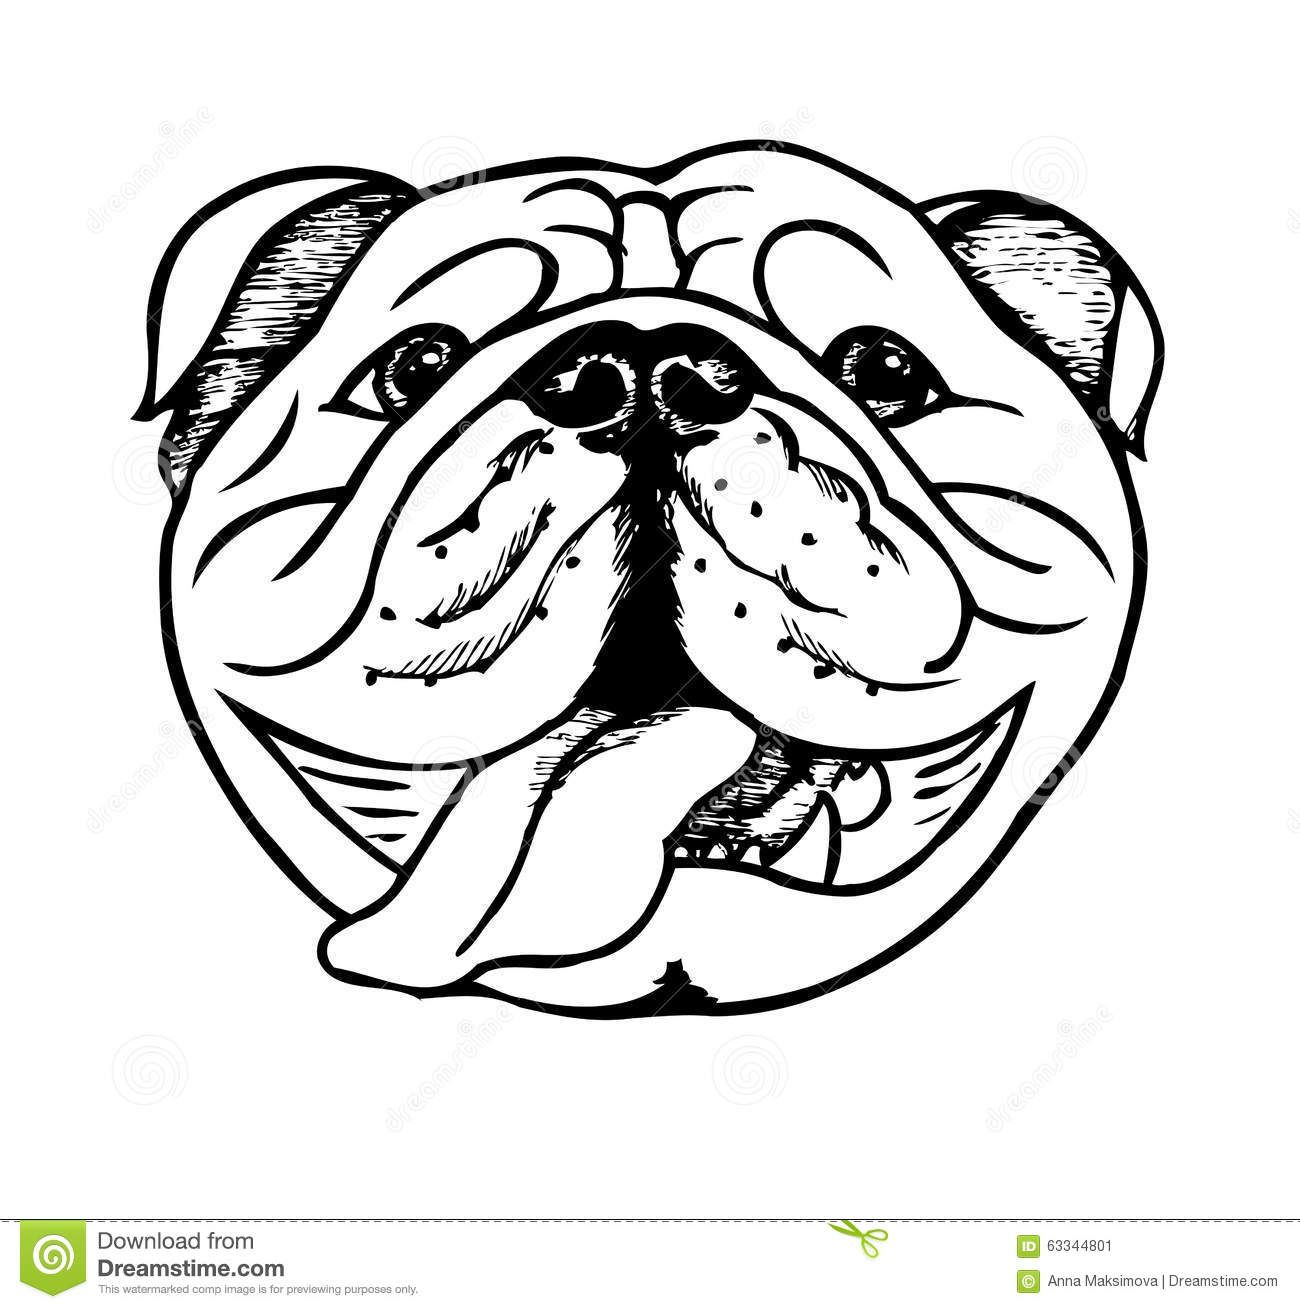 banner free download Clipart english . Vector bulldog black and white